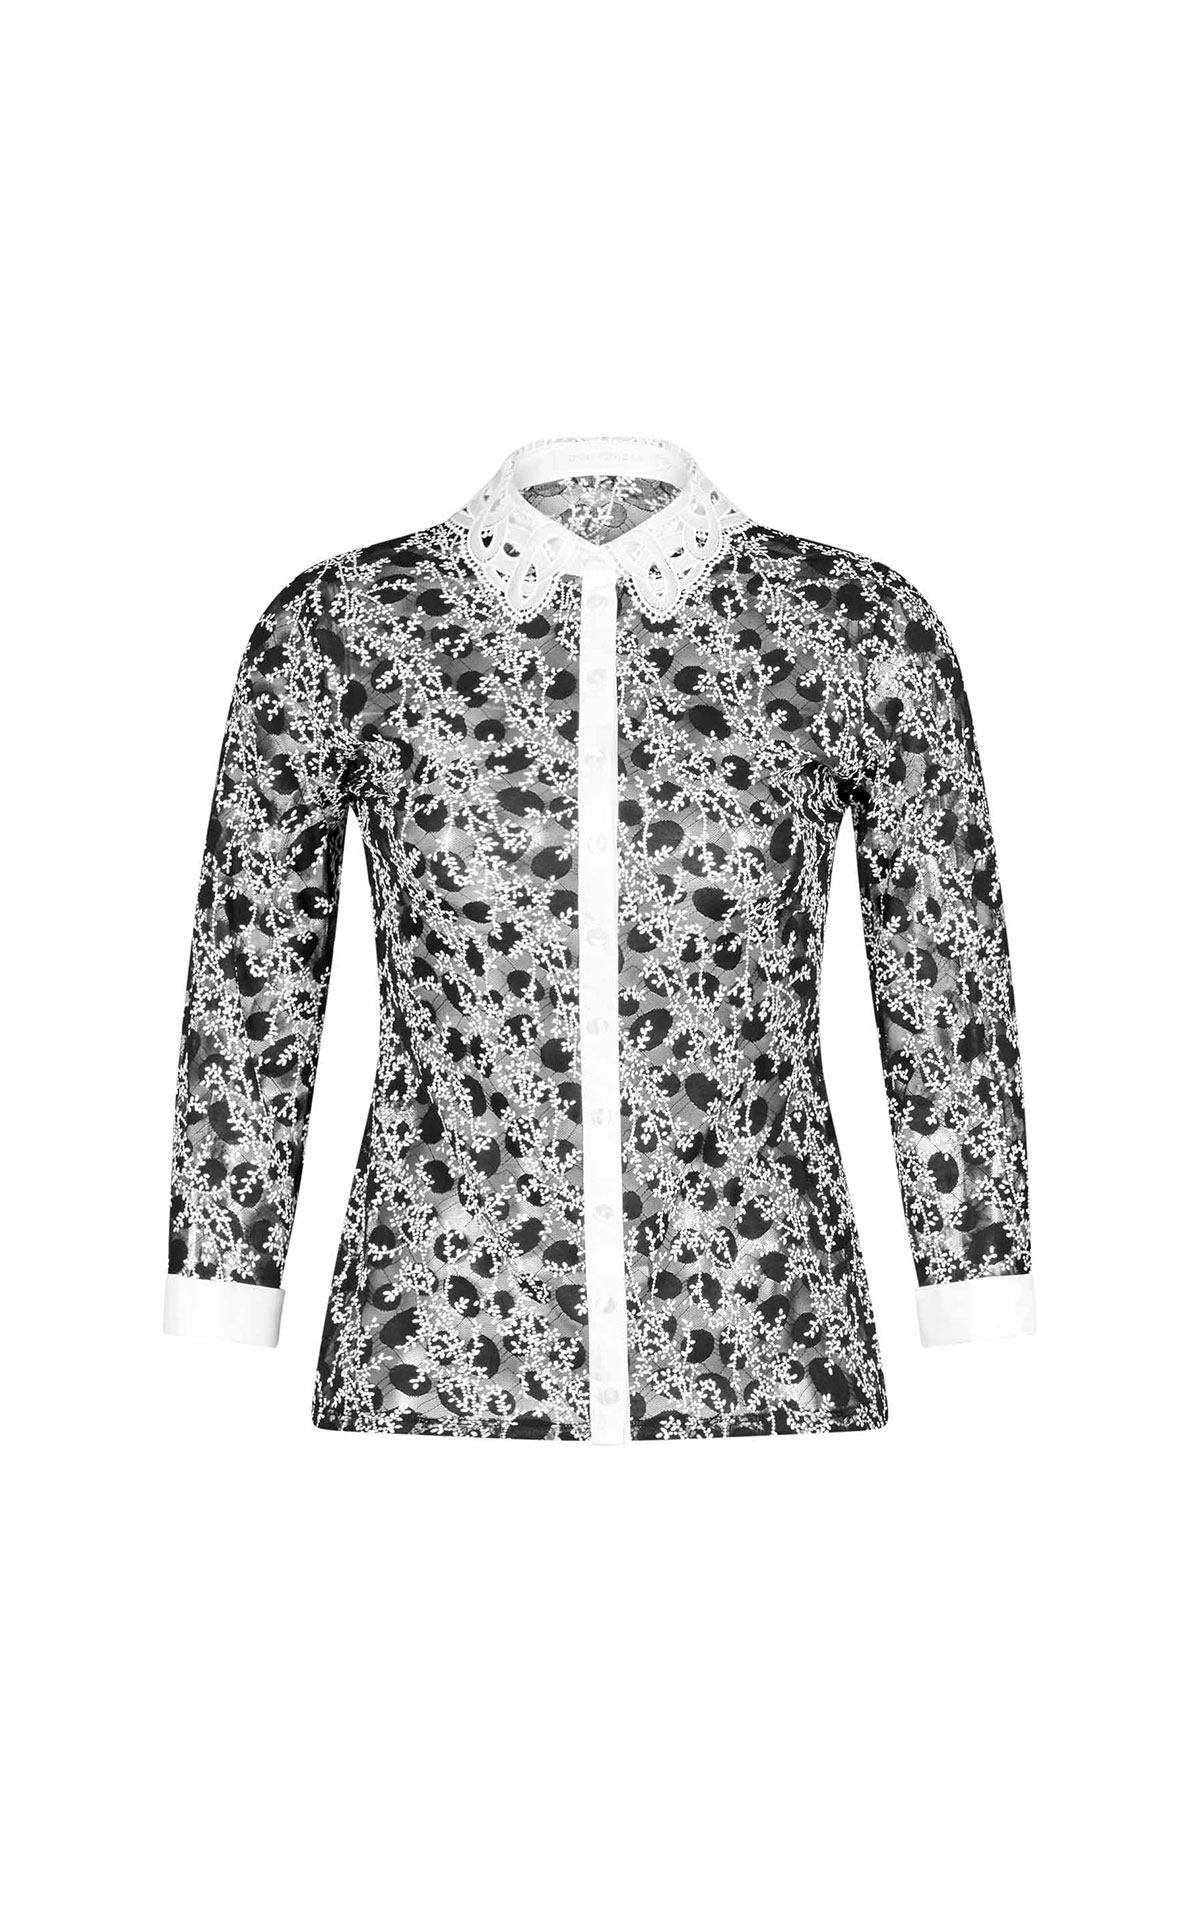 Anne Fontaine Vivia shirt from Bicester Village